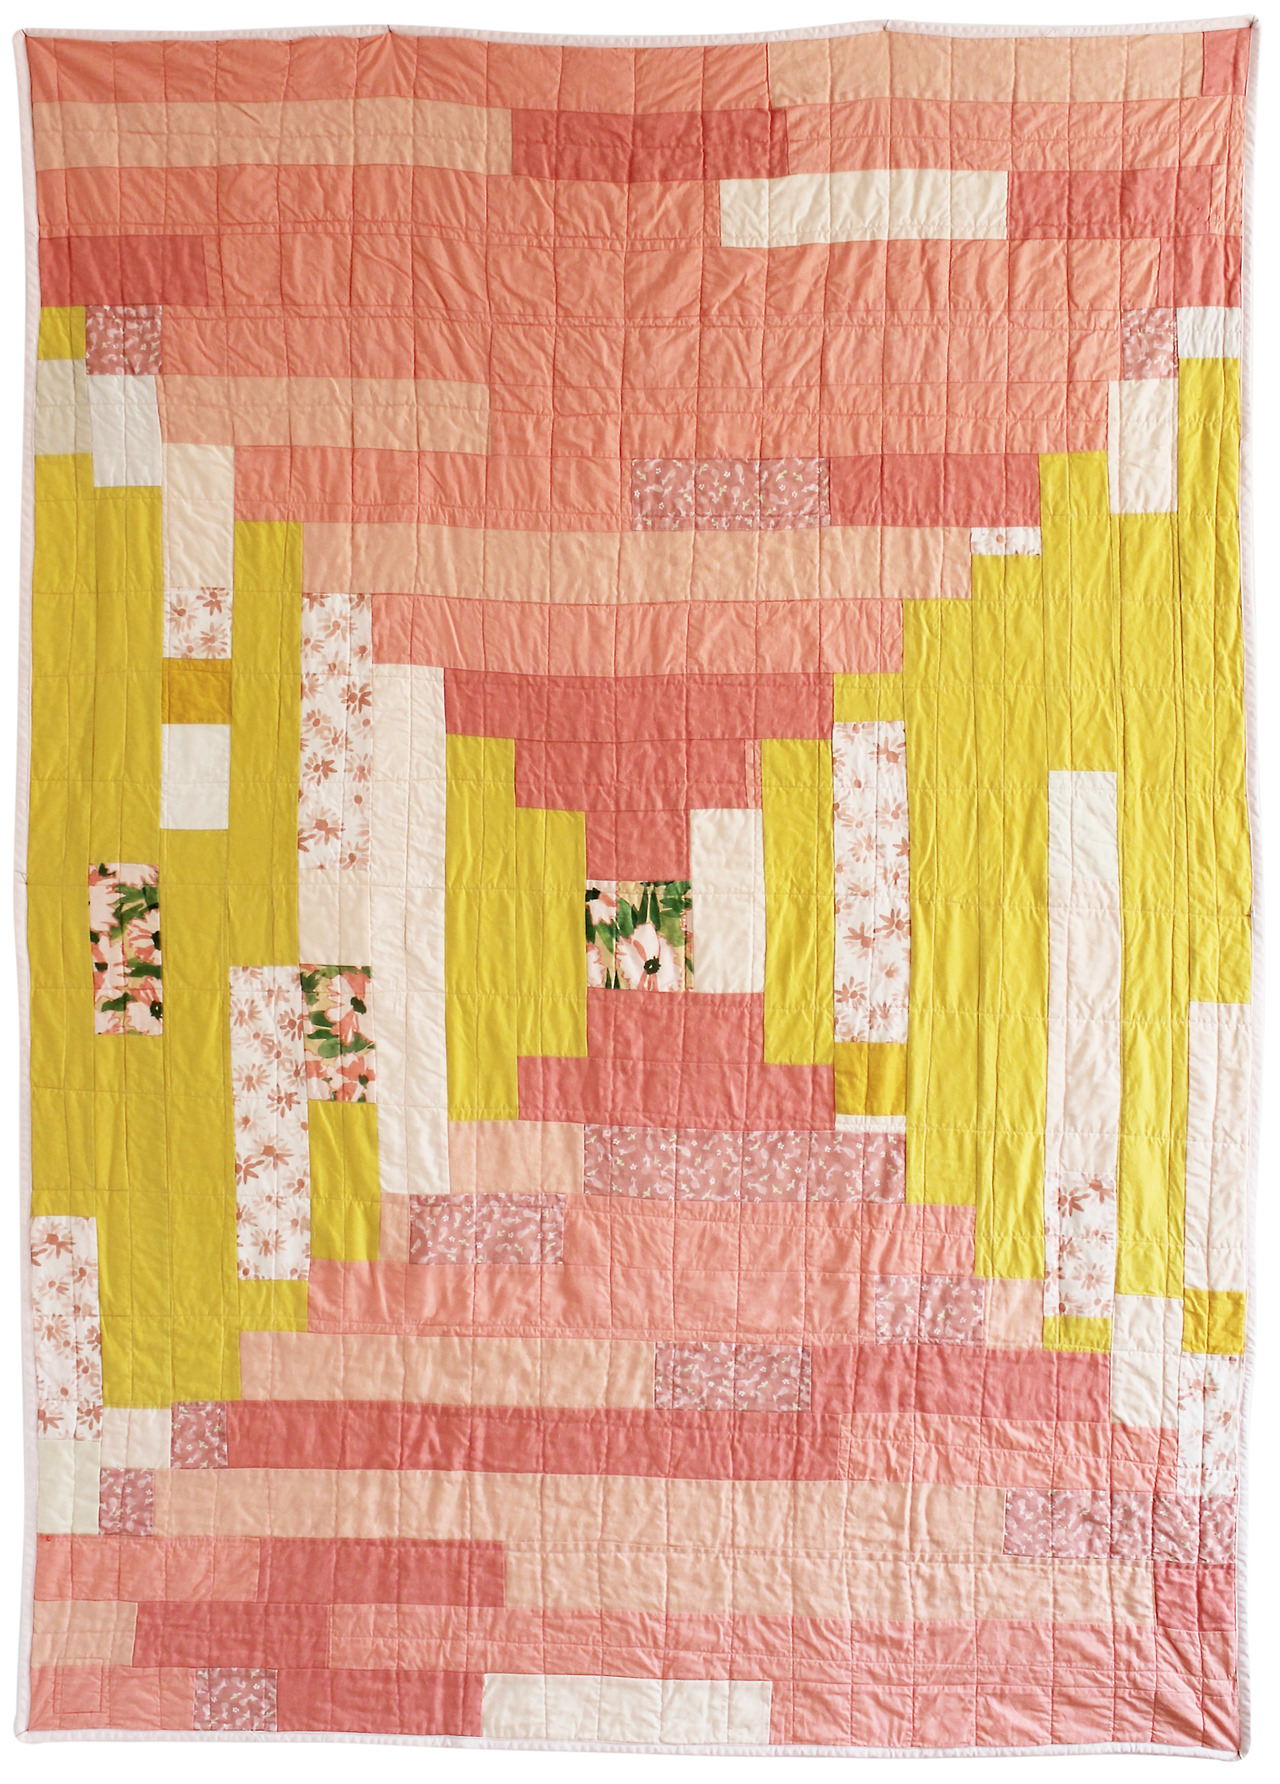 "Summer Day Quilt - 52"" x 75"" I crave these colors in the Summertime. The juicy peaches and sunny yellows are at the same time theraputic and energizing. I started this modern take on the Courthouse Steps motif with a precious square of my all time favorite Leah Goren print, and from there it grew outwards. Along the way it became a study in perspective. As I added strips, I imagined the cheer it could bring to a home on a cloudy day. I give you now my snap shot of Summer, and hope your Summer is going well too (if you live in the Northern Hemisphere). Here. - Gina Rockenwagner"